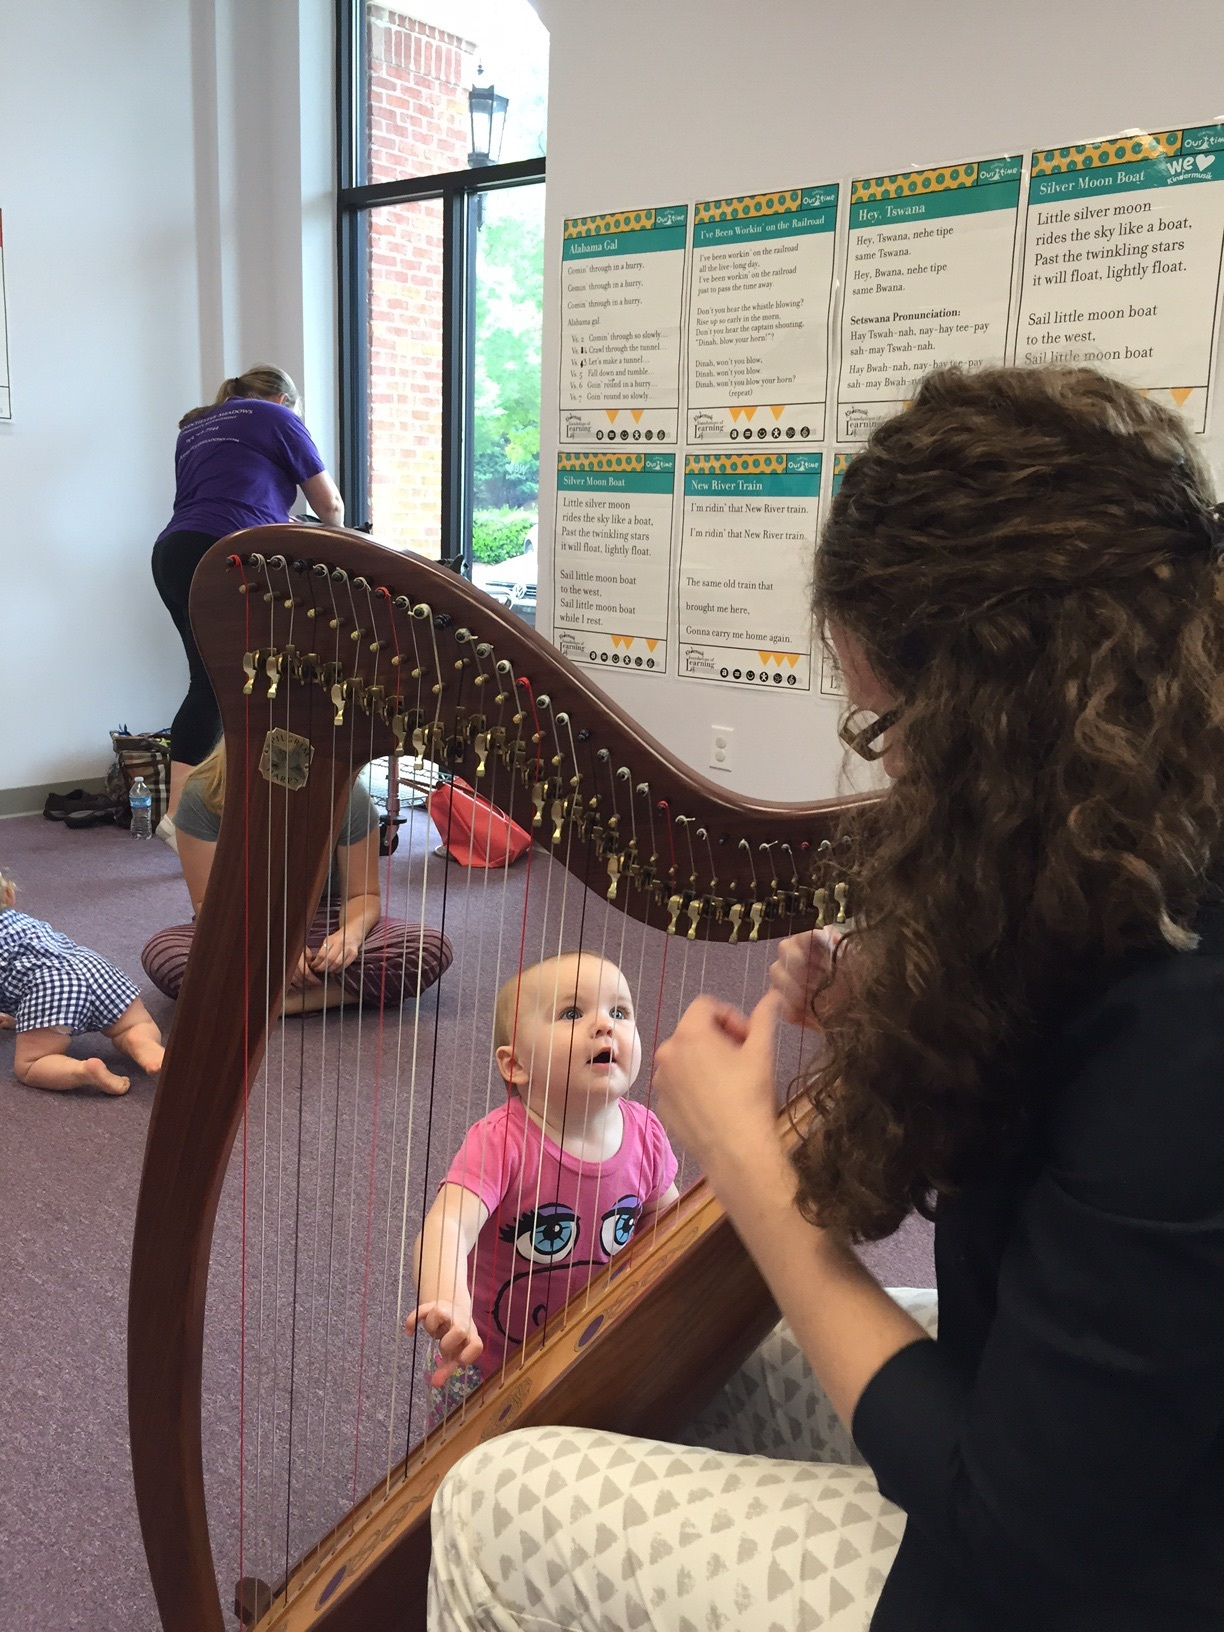 Holding on to those harp strings!